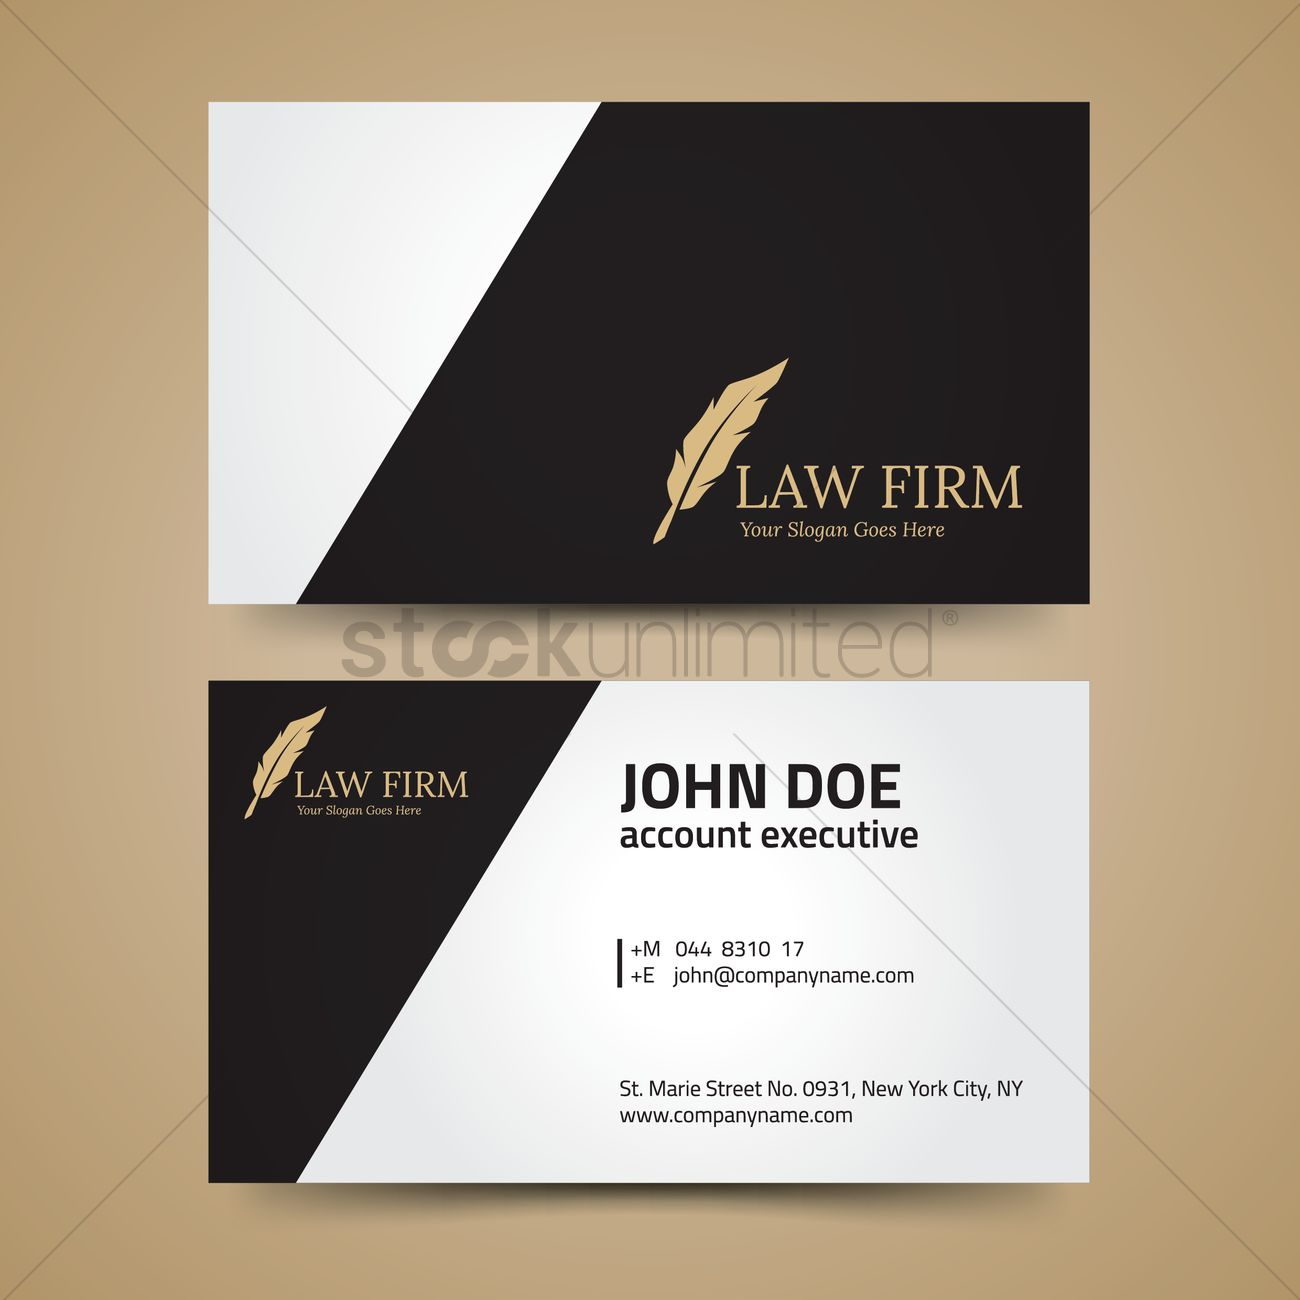 Law firm business card layout vector image 1992561 stockunlimited law firm business card layout vector graphic cheaphphosting Images